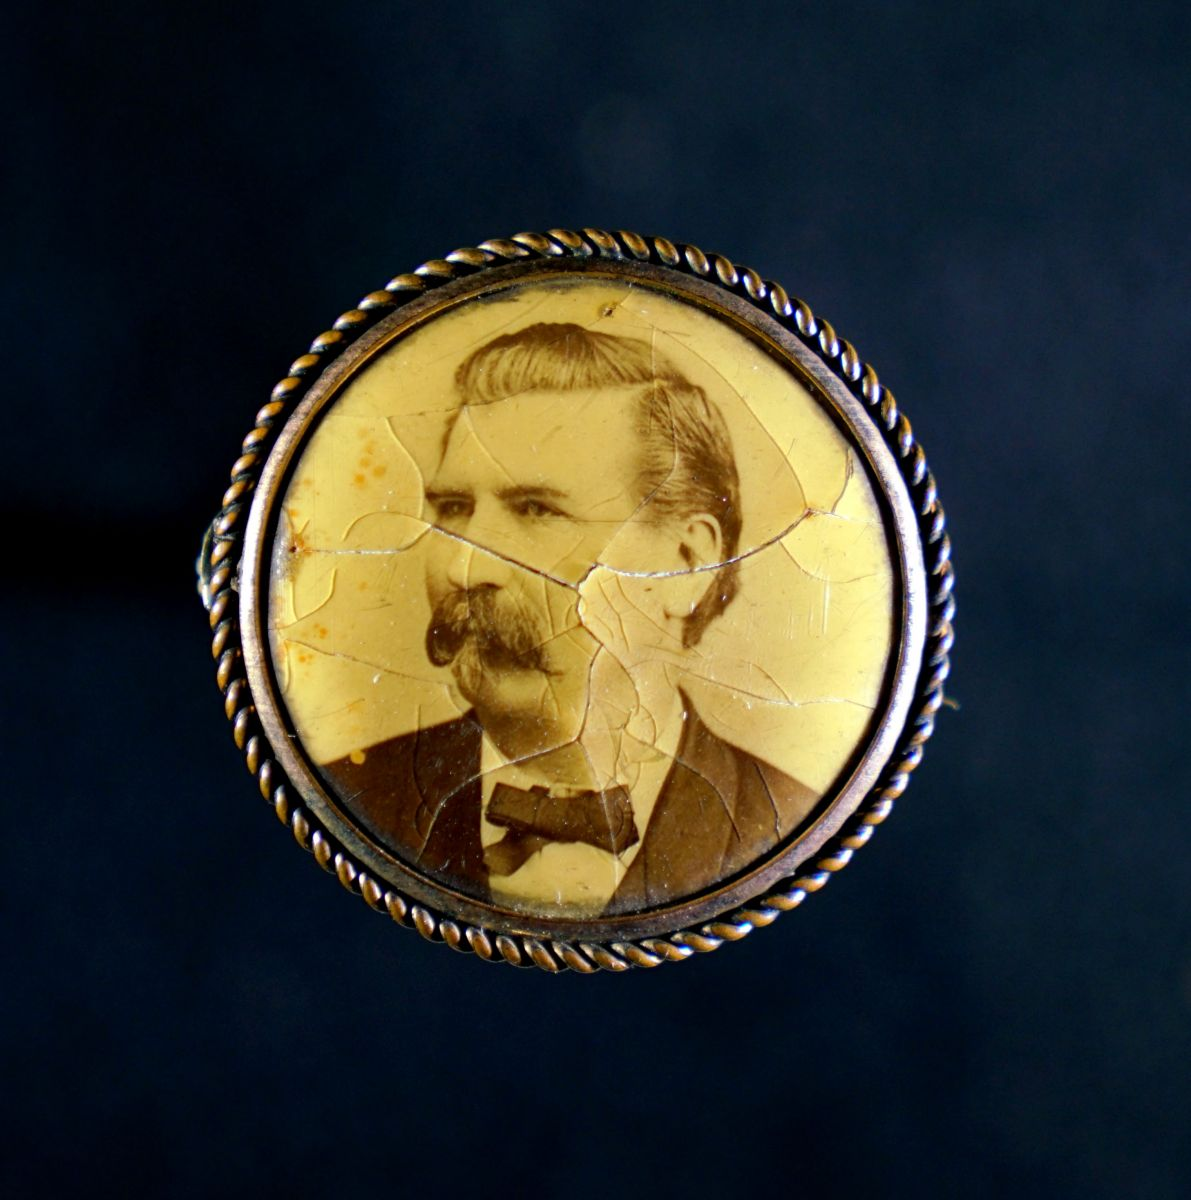 Fig. 5 Lapel button with clasp, Unidentified man, wreathed metal and celluloid, ca. 1900. Author's collection. Digitized by John D. Northrip.